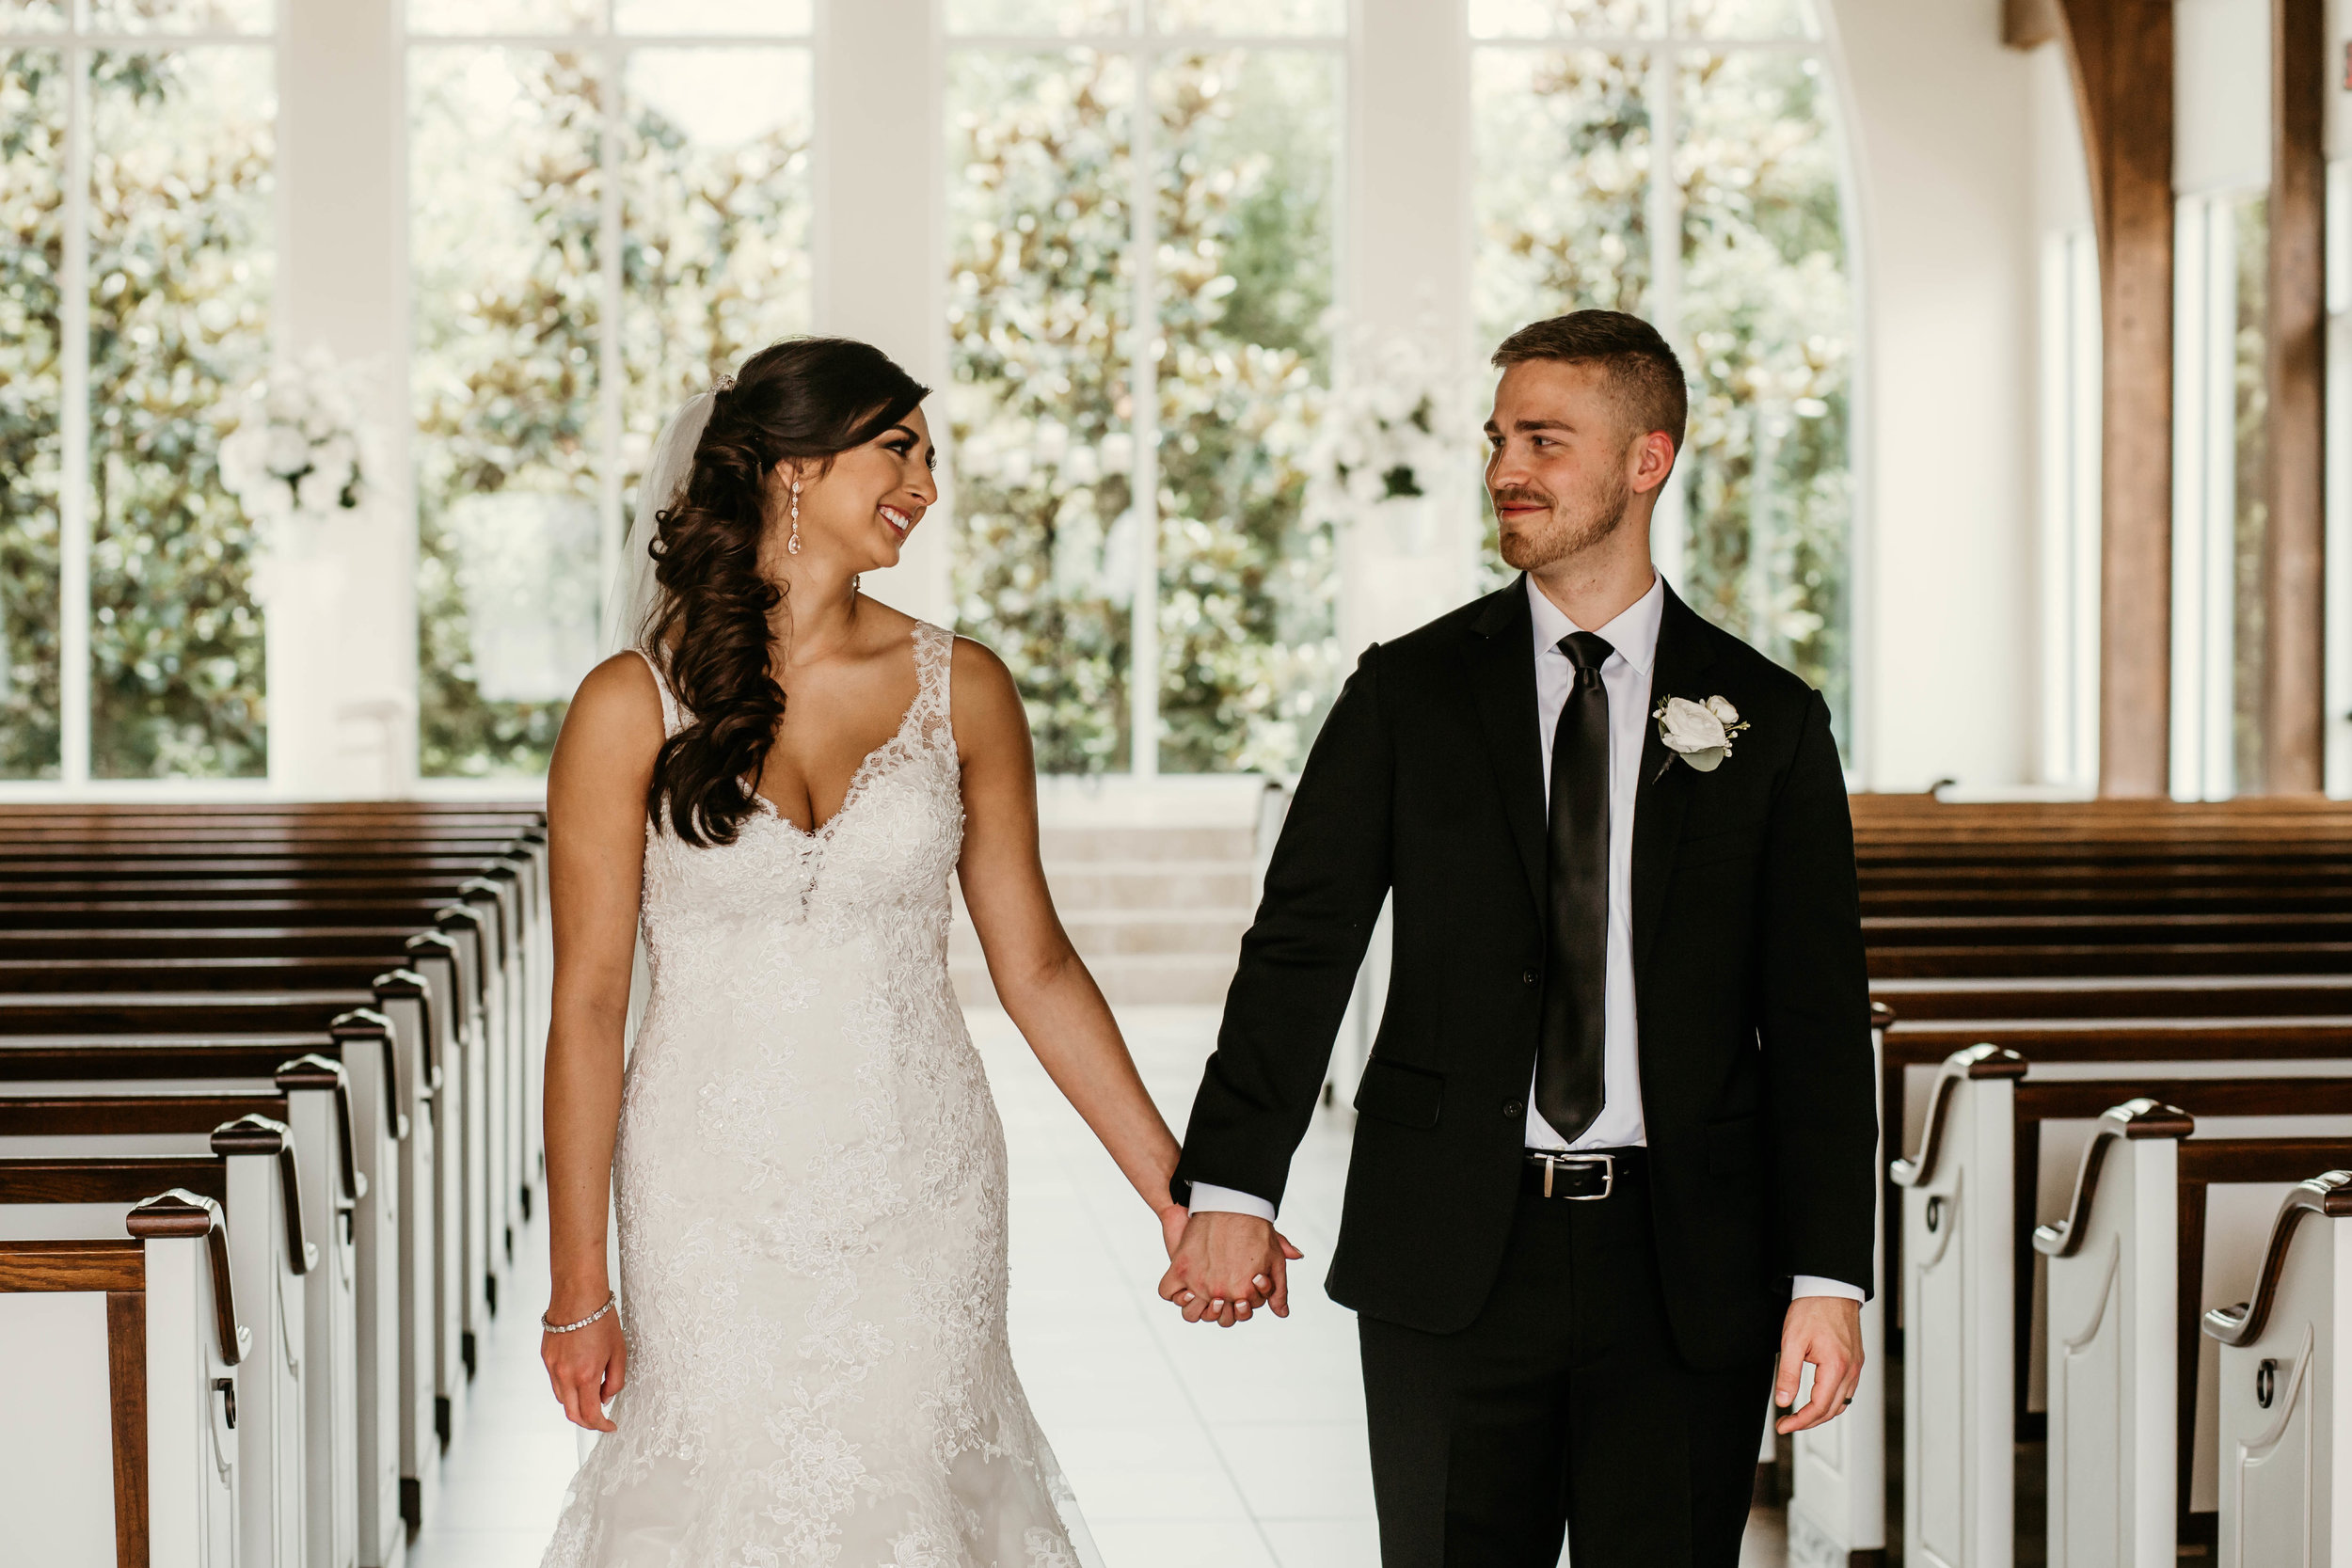 Click here to see more of the S + J Wedding!